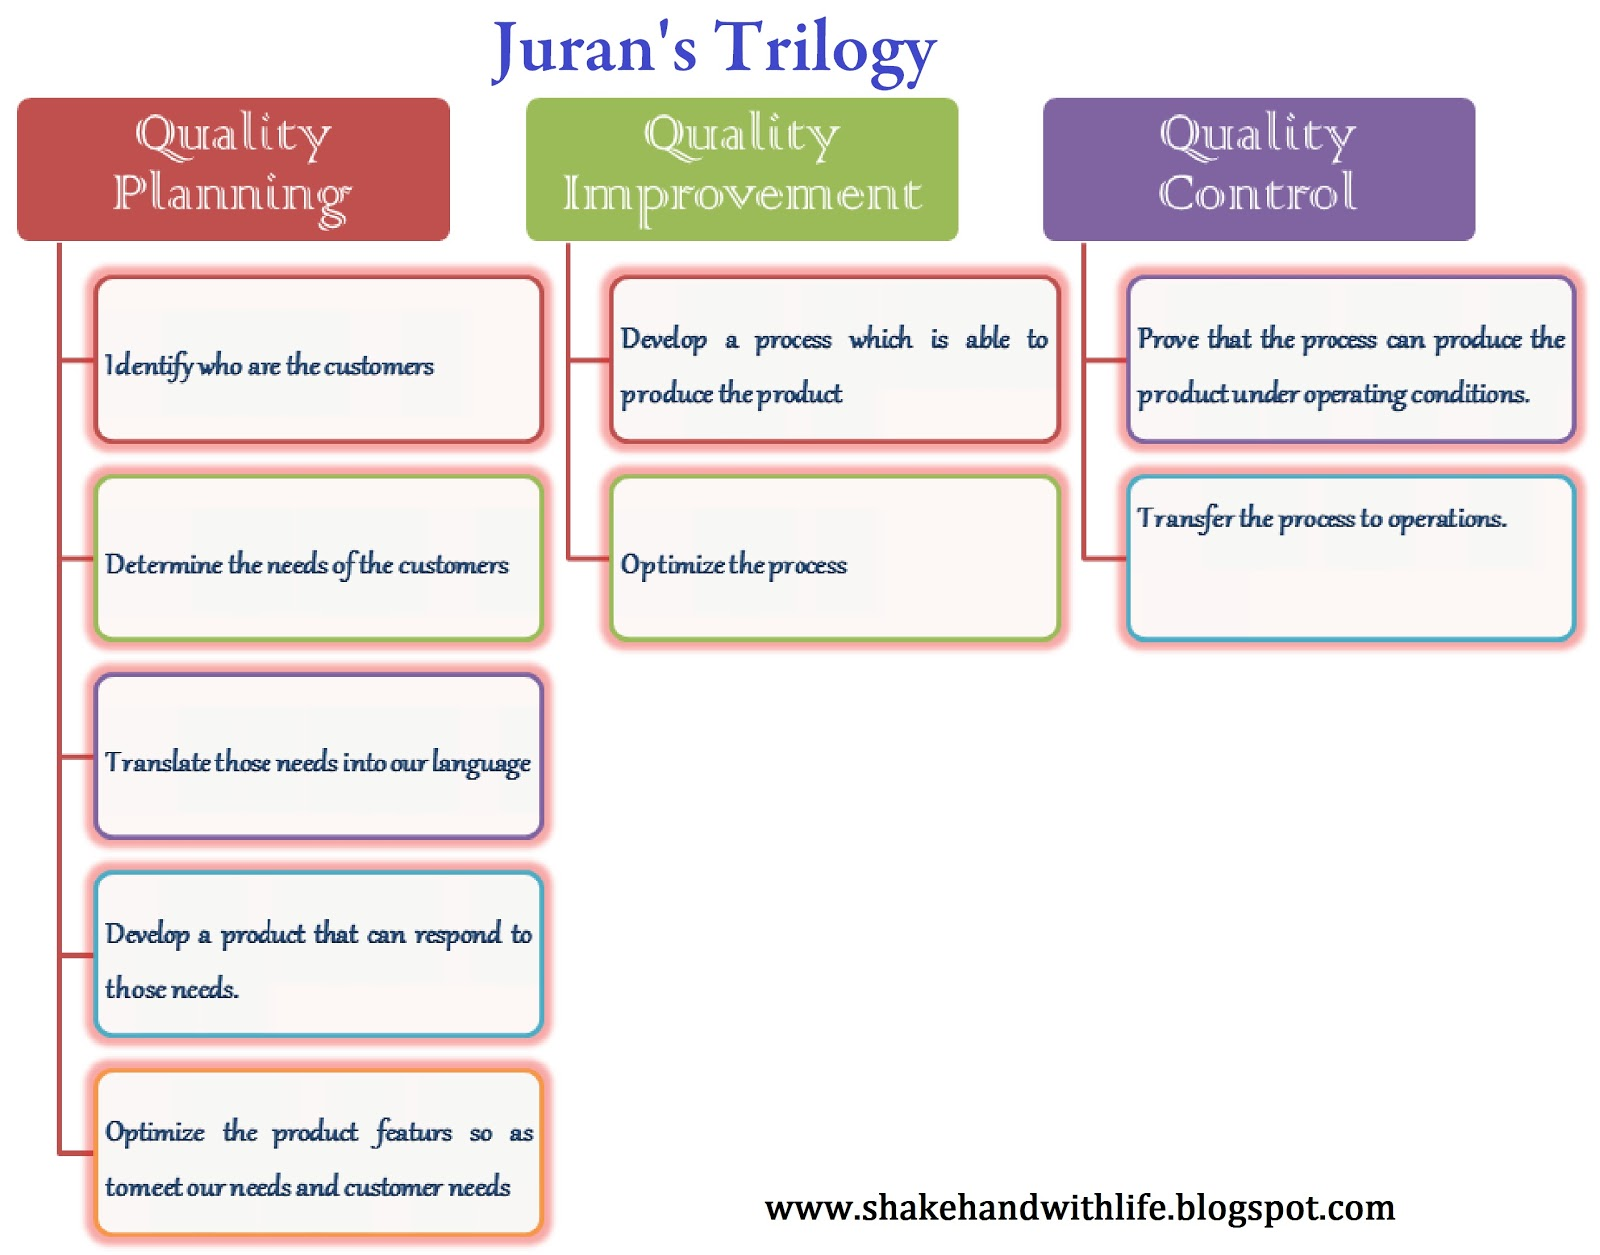 juran trilogy W edwards deming, joseph juran and philip b crosby are three of the most influential people involved in the shift from production and consumption.